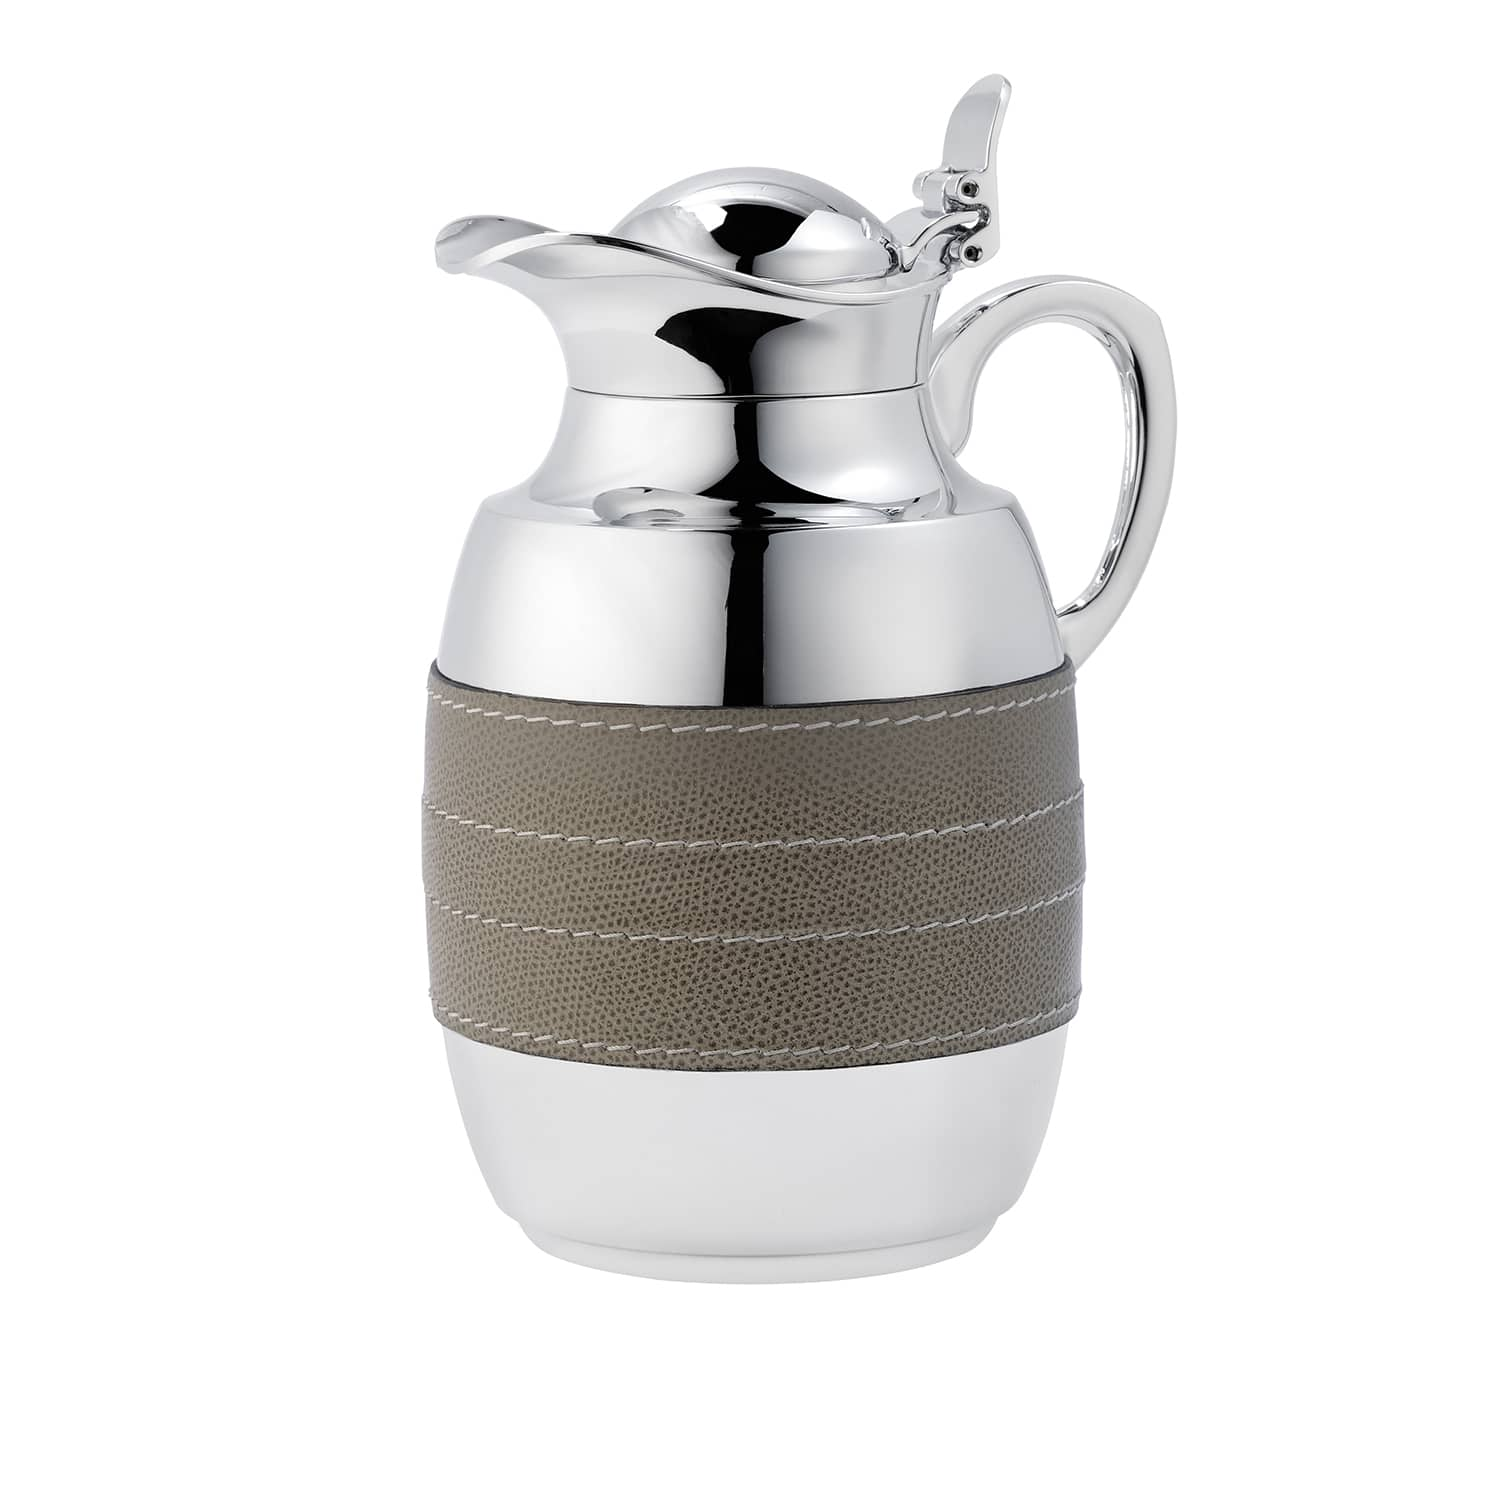 Designer stainless steel and leather carafe